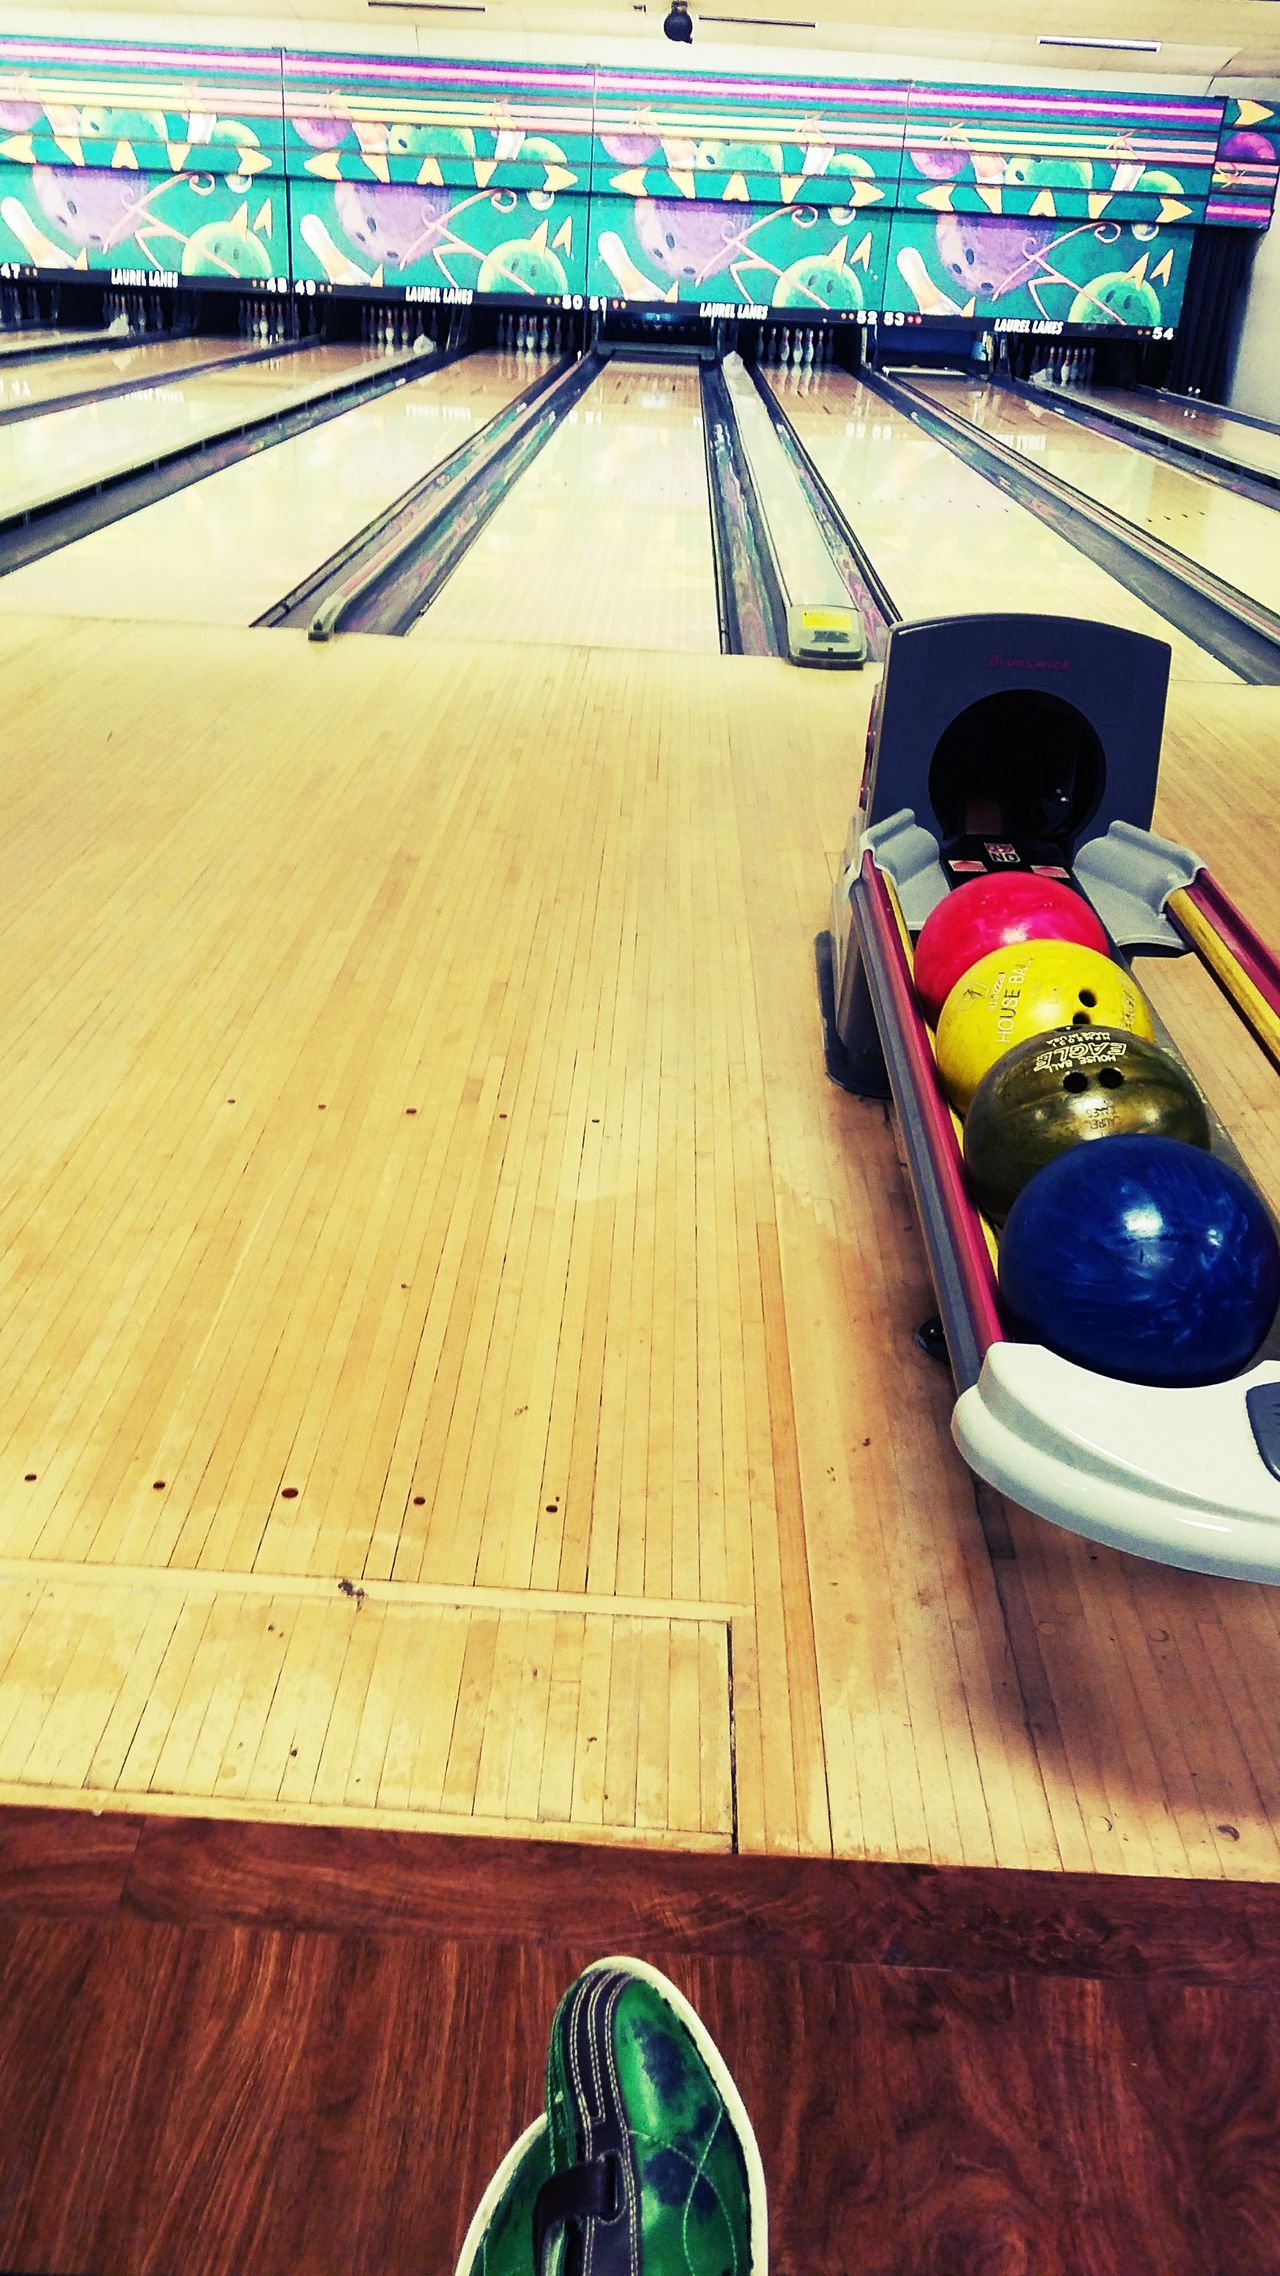 Sport Day Indoors  No People First Eyeem Photo Bowling Bowling Alley Bowling Shoes Color Vibrant Color